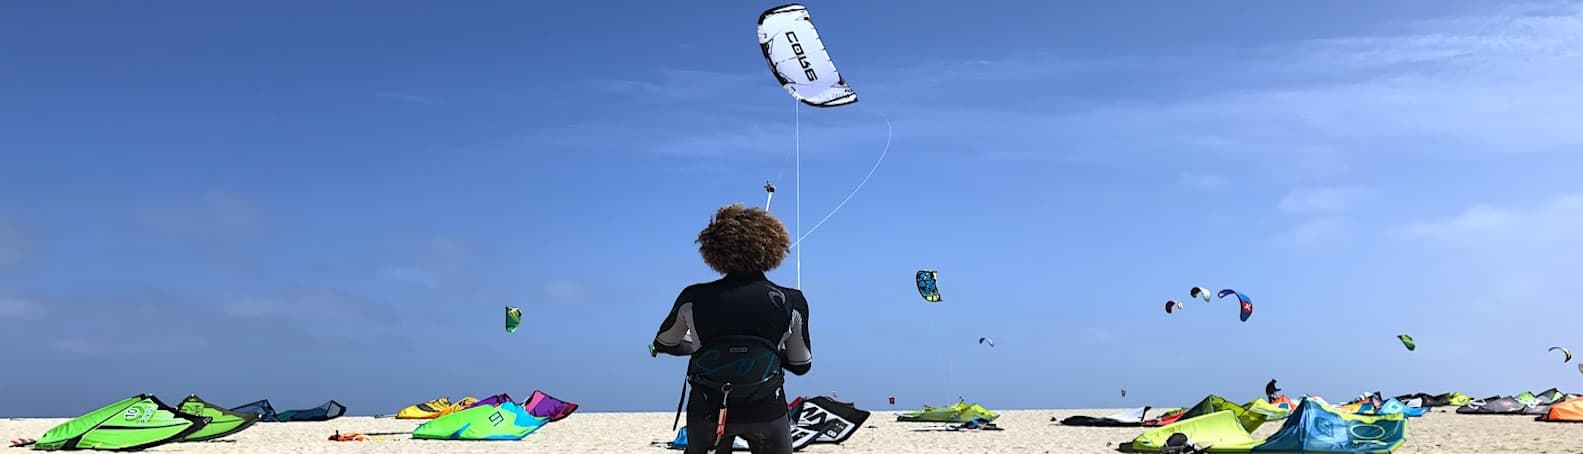 Cape Verde Sal Kite Beach